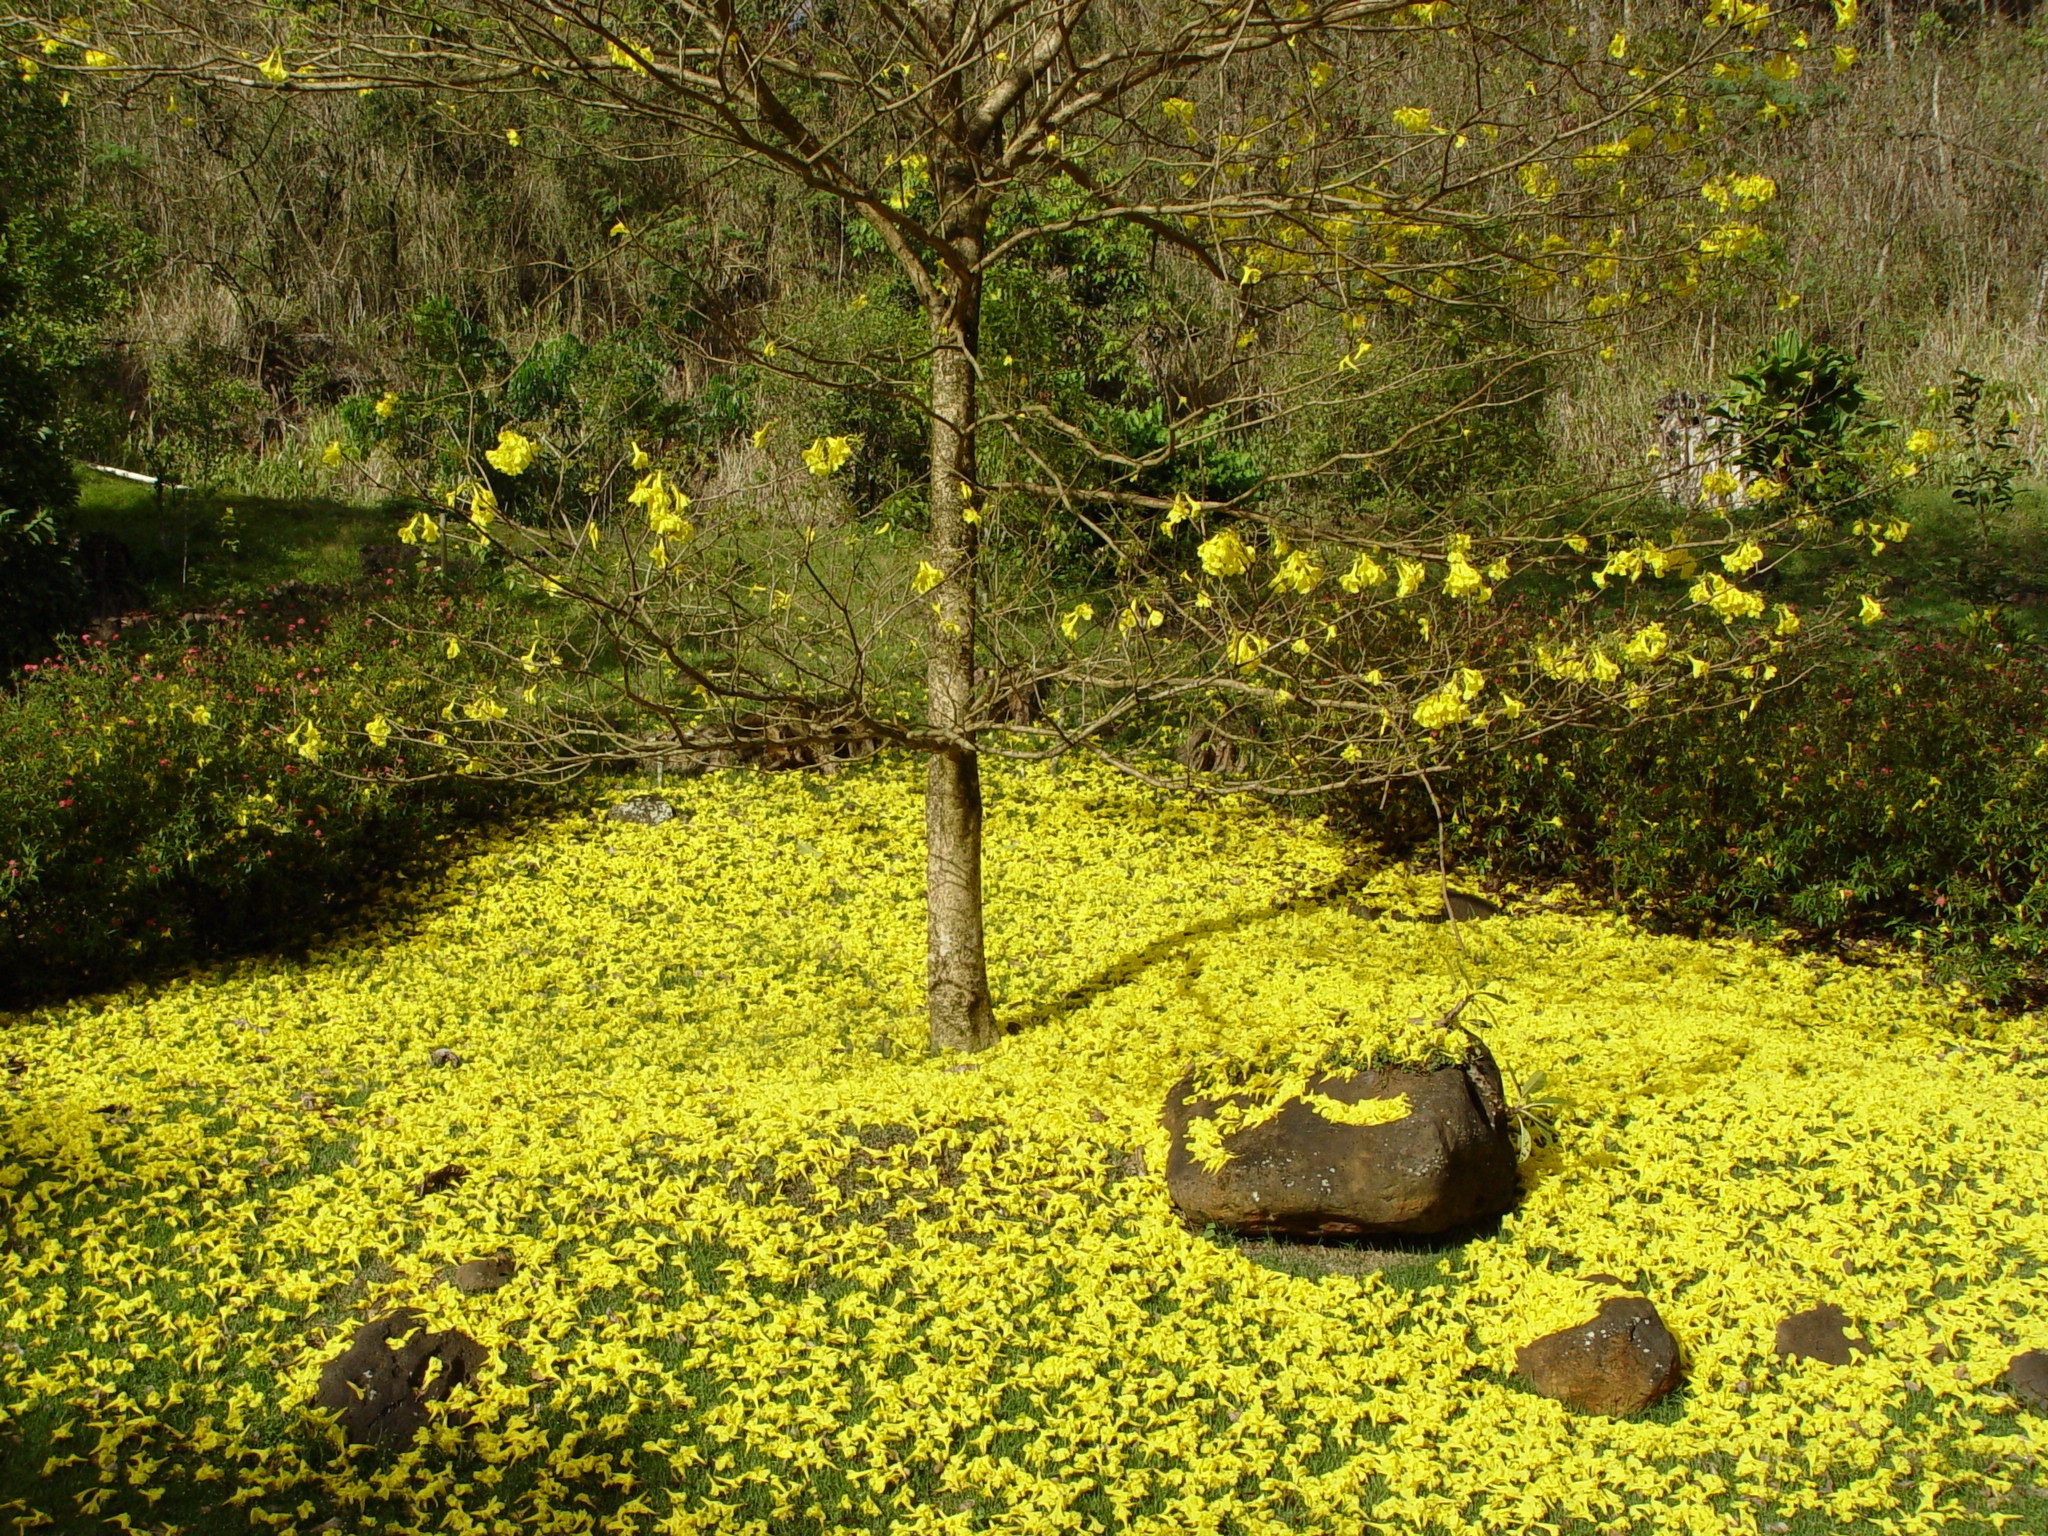 Tabebuia serratifolia   - Tree with fallen flowers carpeting ground